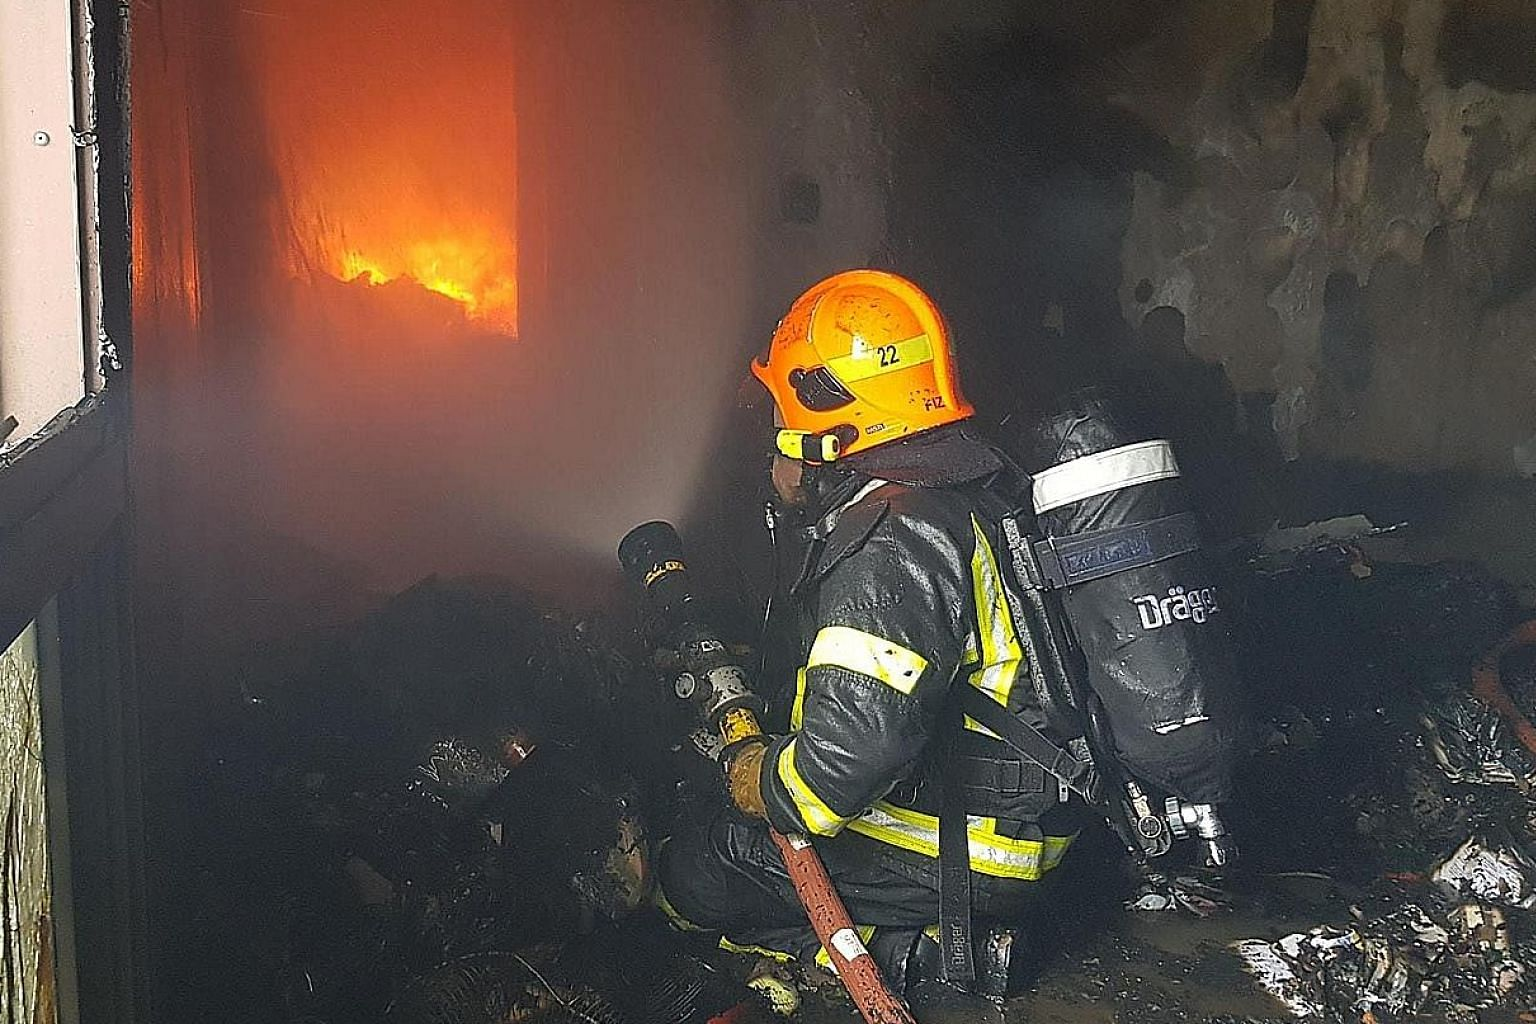 Firefighters wearing breathing apparatus had to forcibly enter the flat. Fire had engulfed the entire unit due to the vast accumulation of combustible items inside, said the Singapore Civil Defence Force.